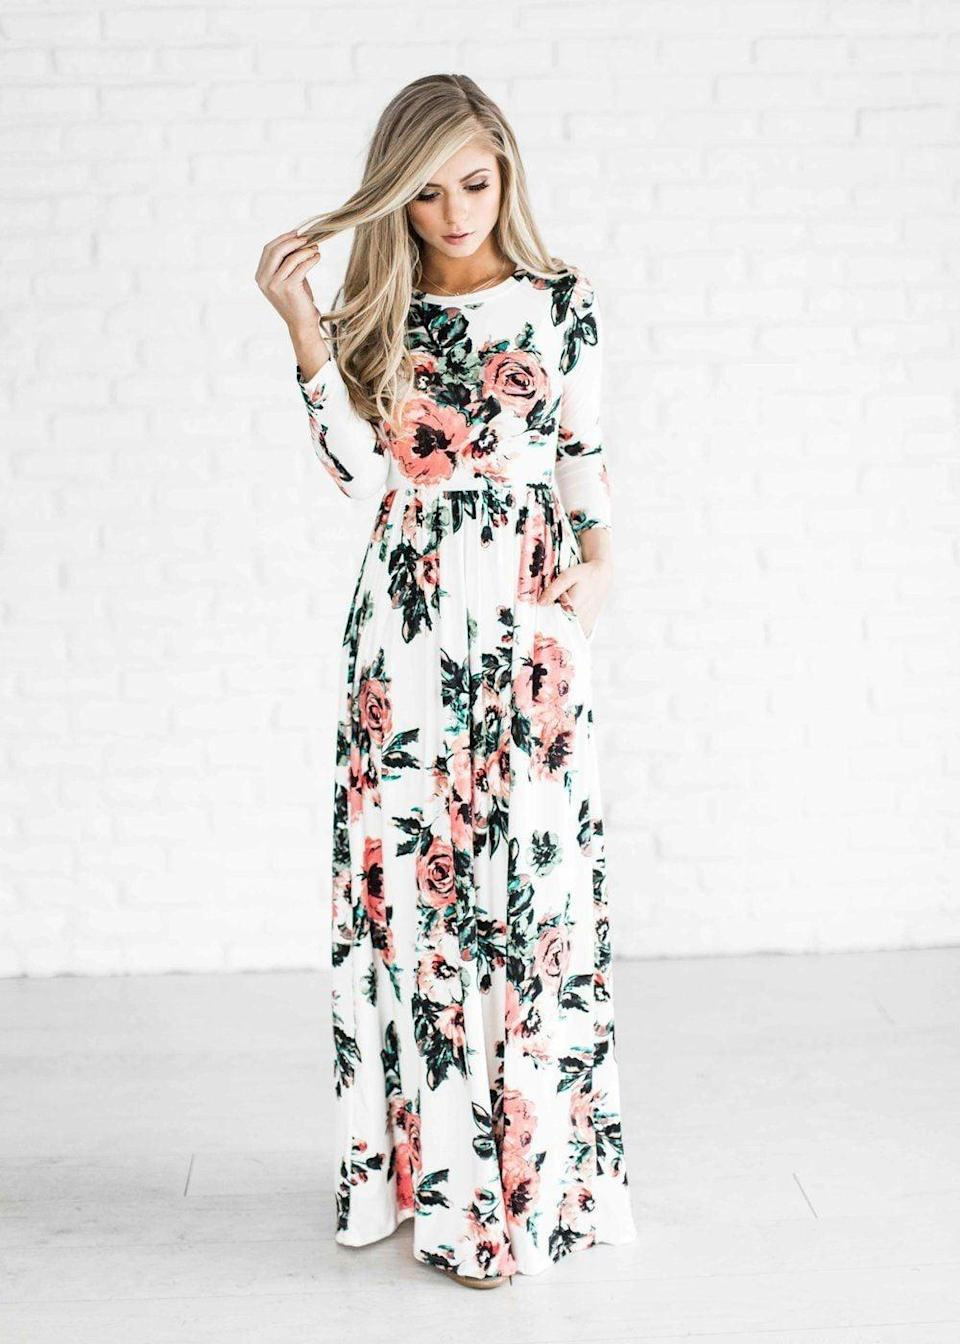 """<p>We especially love this <a href=""""https://www.popsugar.com/buy/Youcoo-Floral-Printed-Long-Sleeve-Dress-116492?p_name=Youcoo%20Floral%20Printed%20Long-Sleeve%20Dress&retailer=amazon.com&pid=116492&price=14&evar1=fab%3Aus&evar9=44662359&evar98=https%3A%2F%2Fwww.popsugar.com%2Ffashion%2Fphoto-gallery%2F44662359%2Fimage%2F44662364%2FYoucoo-Floral-Printed-Long-Sleeve-Dress&list1=shopping%2Camazon%2Cdresses%2Cspring%2Cflorals%2Cspring%20fashion&prop13=mobile&pdata=1"""" class=""""link rapid-noclick-resp"""" rel=""""nofollow noopener"""" target=""""_blank"""" data-ylk=""""slk:Youcoo Floral Printed Long-Sleeve Dress"""">Youcoo Floral Printed Long-Sleeve Dress</a> ($14) because it has pockets.</p>"""